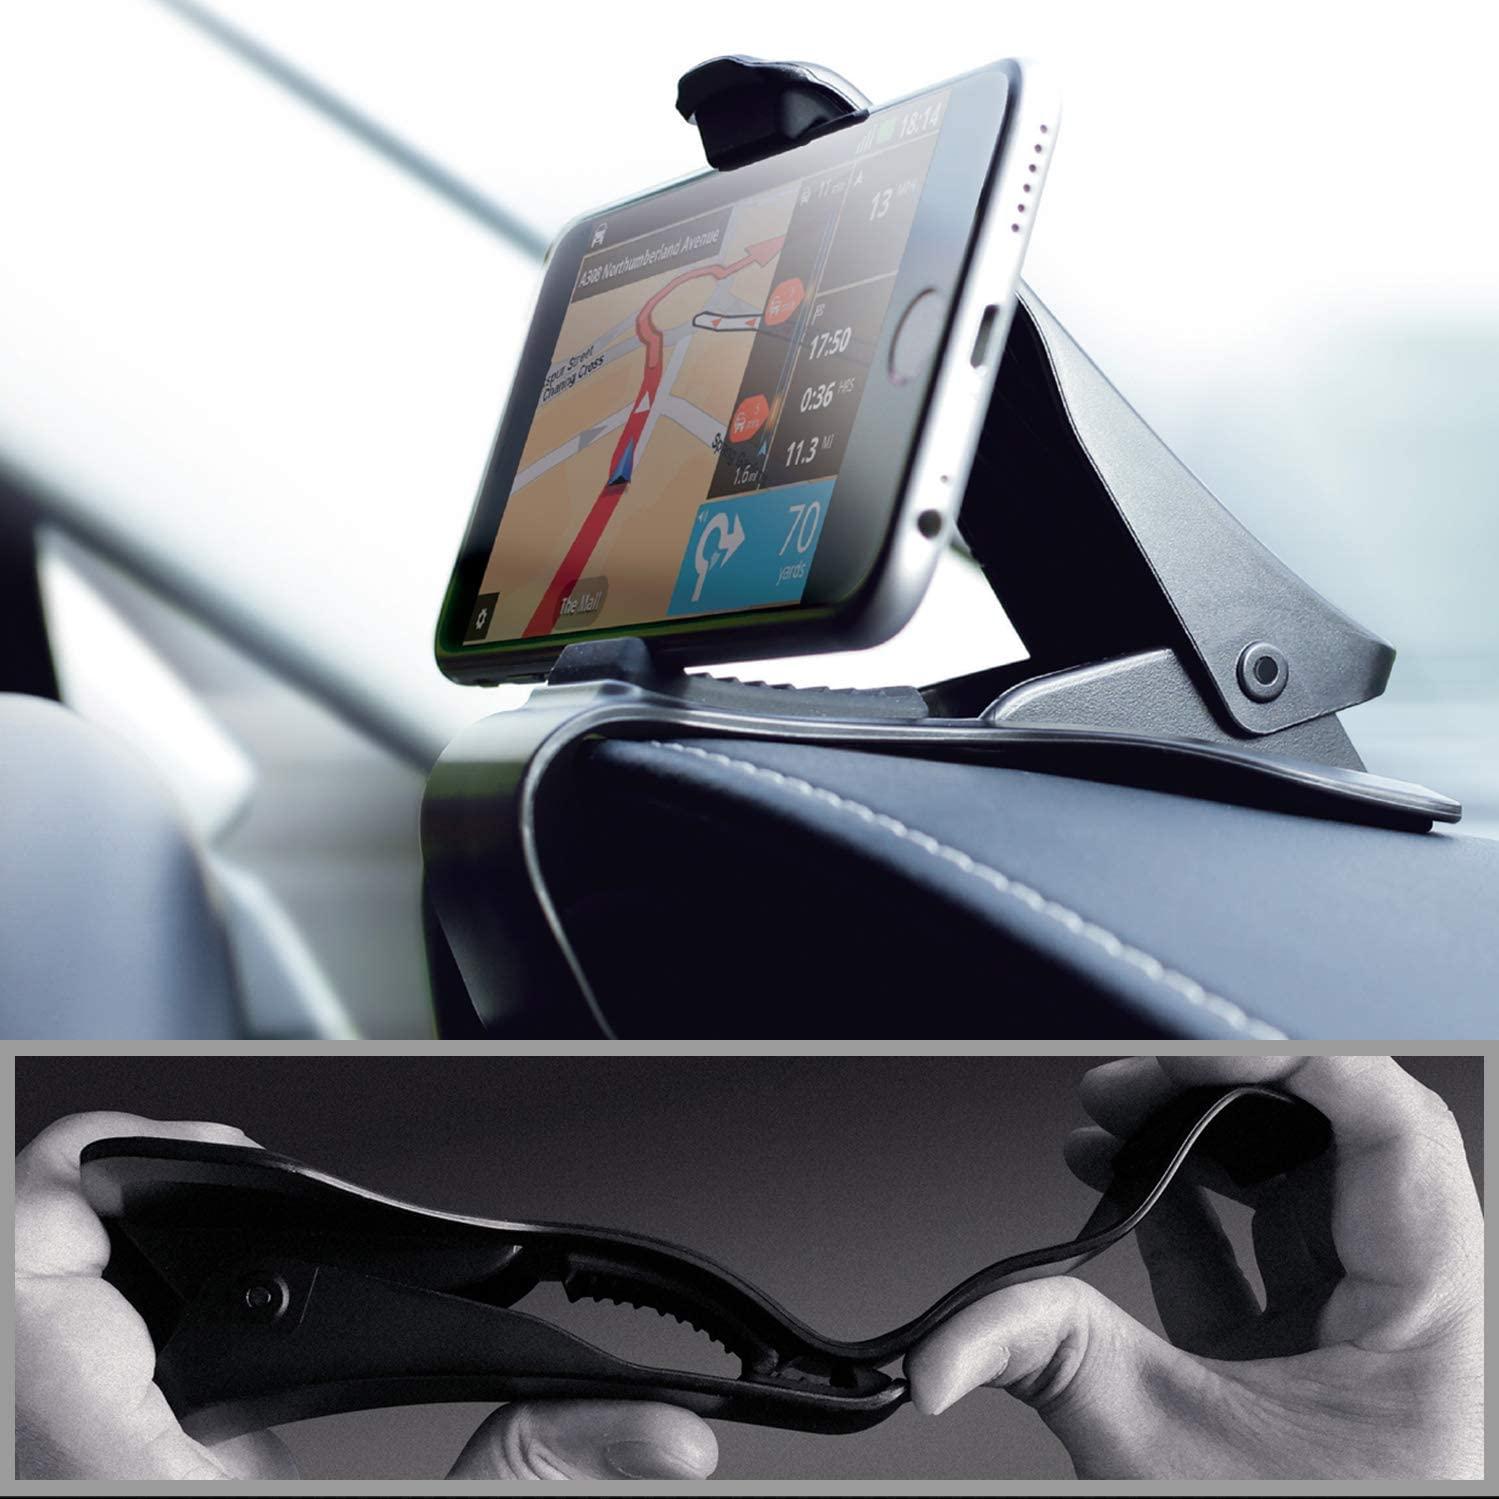 Samsung Car Phone Holder Huawei and More Smartphones Mate2GO Cell Phone Car Mount with Dash Mat HUD Car Cradle with Non-Slip Dash Pad Smartphone Bracket Compatible with iPhone